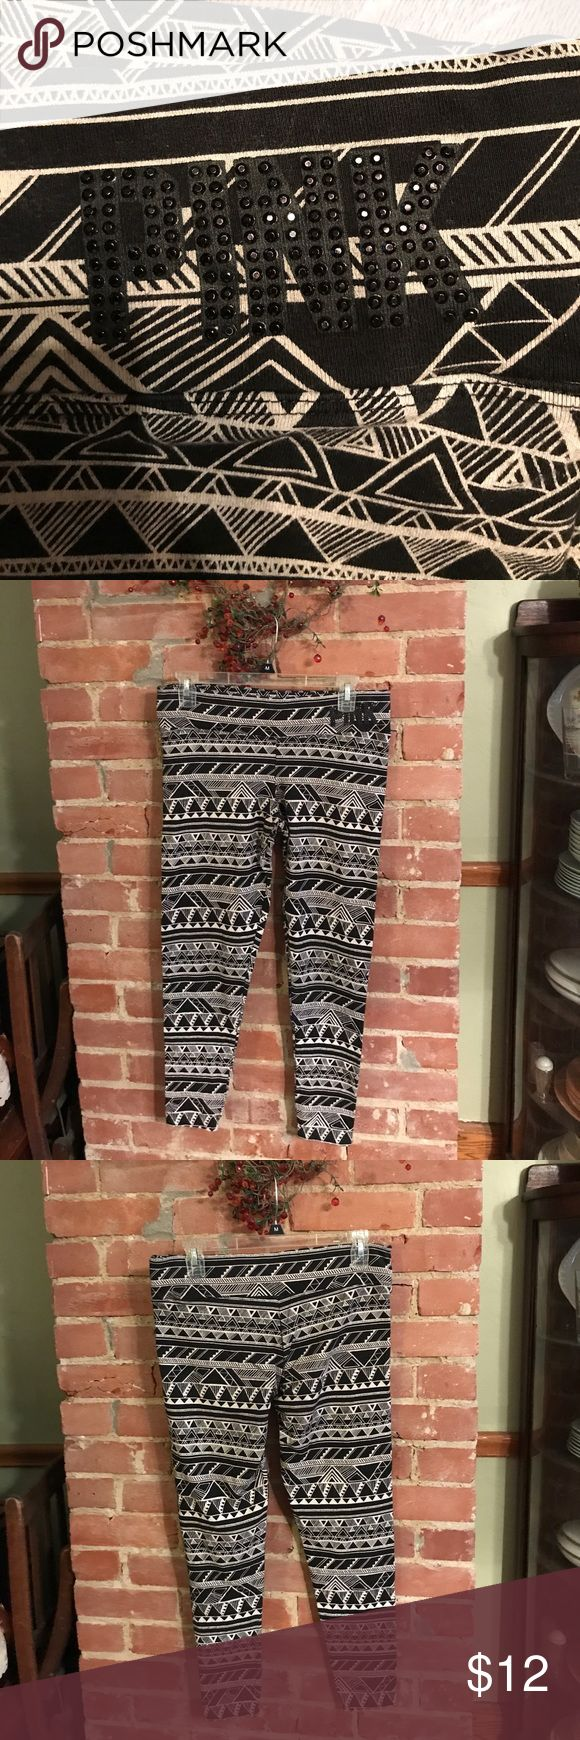 PINK Aztec Leggings PINK yoga waisted, ankle length, Aztec printed leggings. Love the comfort & quality of these. Normal wear. No holes. Smoke free home. PINK Victoria's Secret Pants Leggings